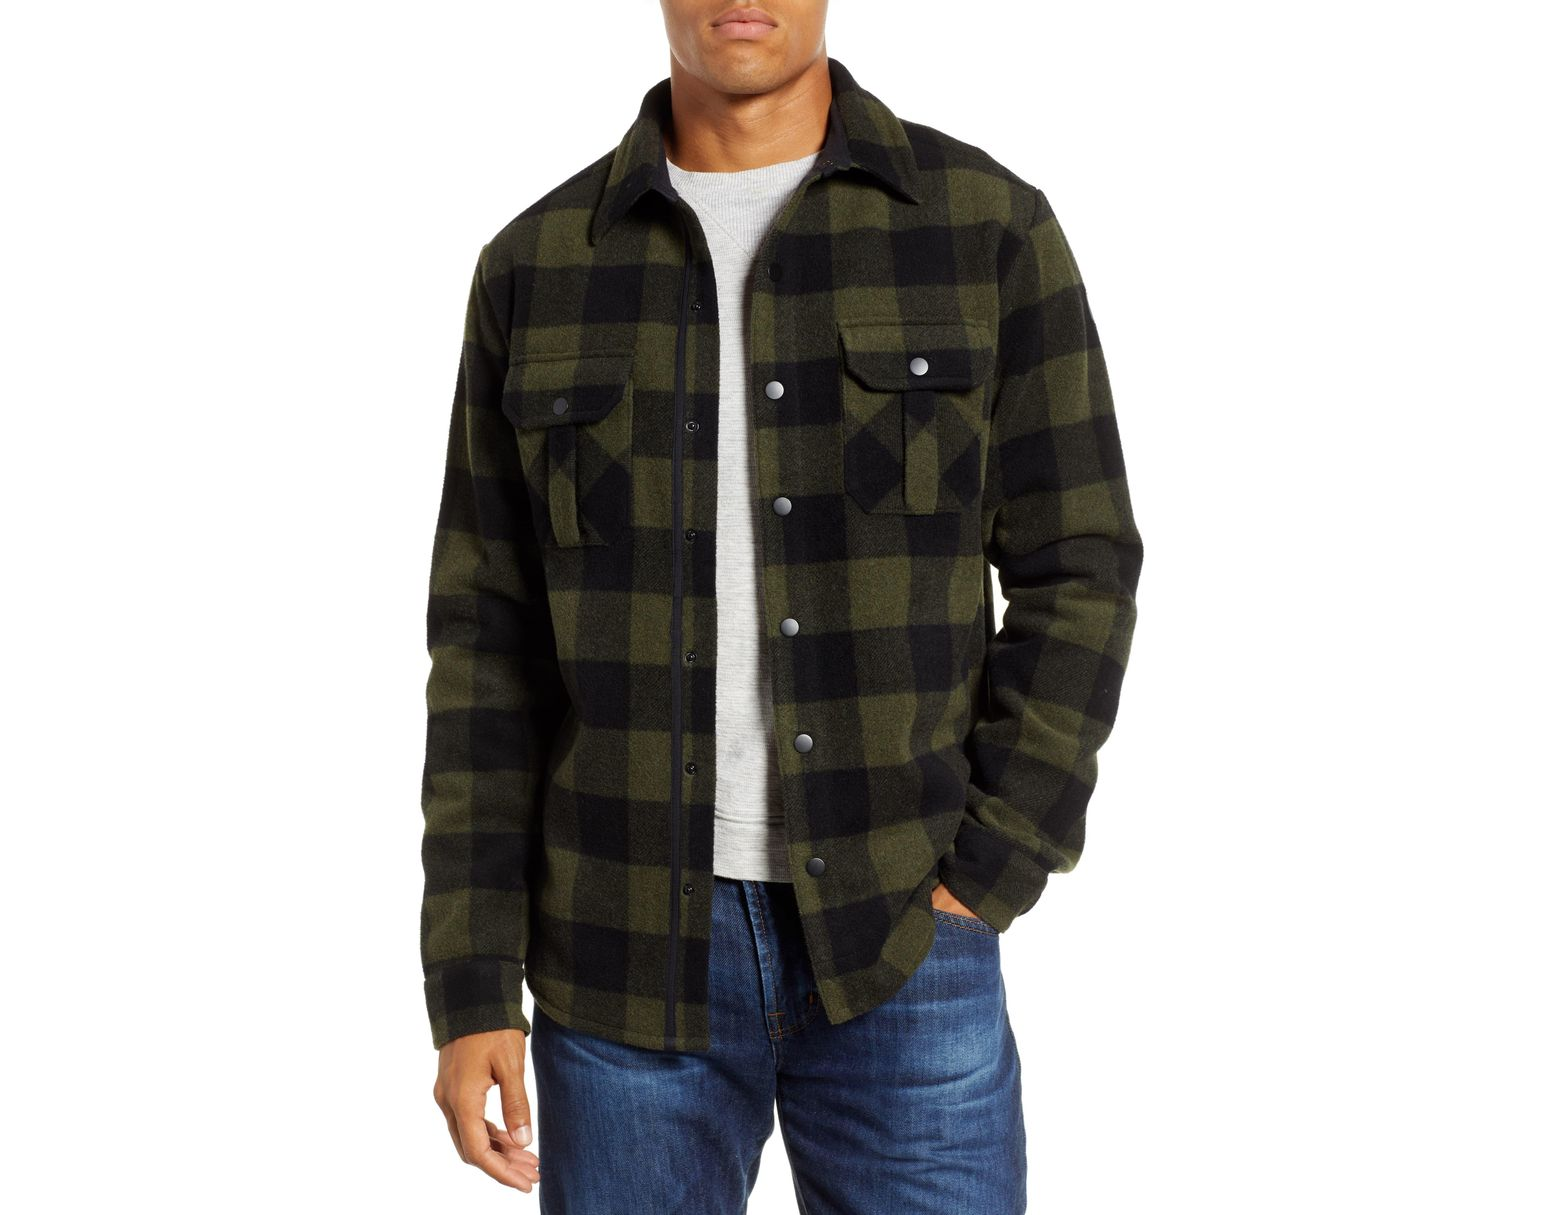 c4a72ce01c1a Smartwool Anchor Line Flannel Shirt Jacket in Green for Men - Lyst